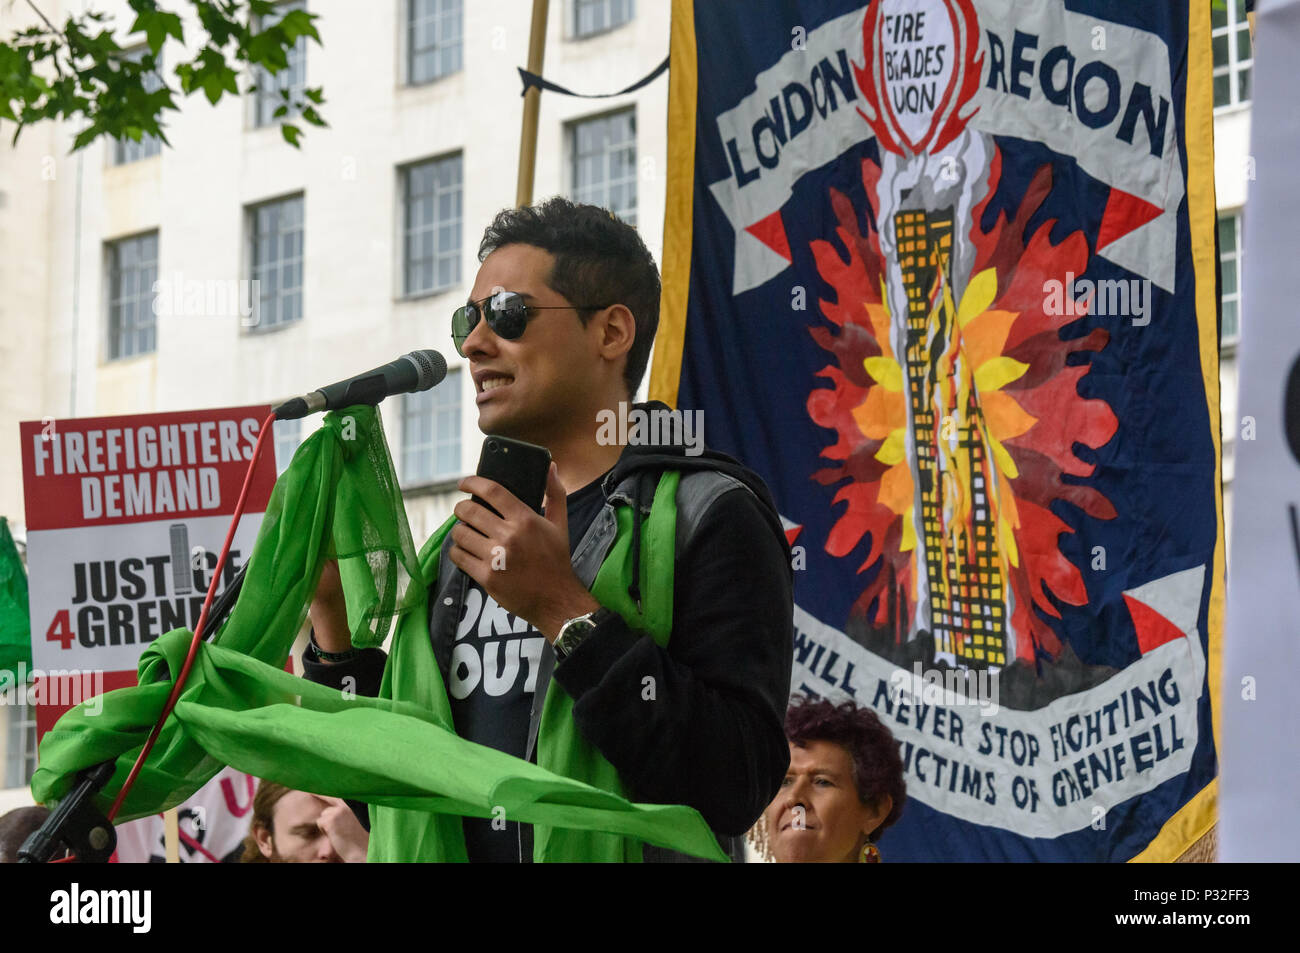 London, UK. 16th June 2018. Shabbir Lakha of People's Assembly speaks at the protest at Downing St in solidarity with the 72 killed and the survivors of the Grenfell fire a year ago organised by Justice4Grenfell and the FBU (Fire Brigades Union.) After some speeches they marched to the Home Office for a brief protest before returning to Downing St for more speeches. mm Credit: Peter Marshall/Alamy Live News - Stock Image